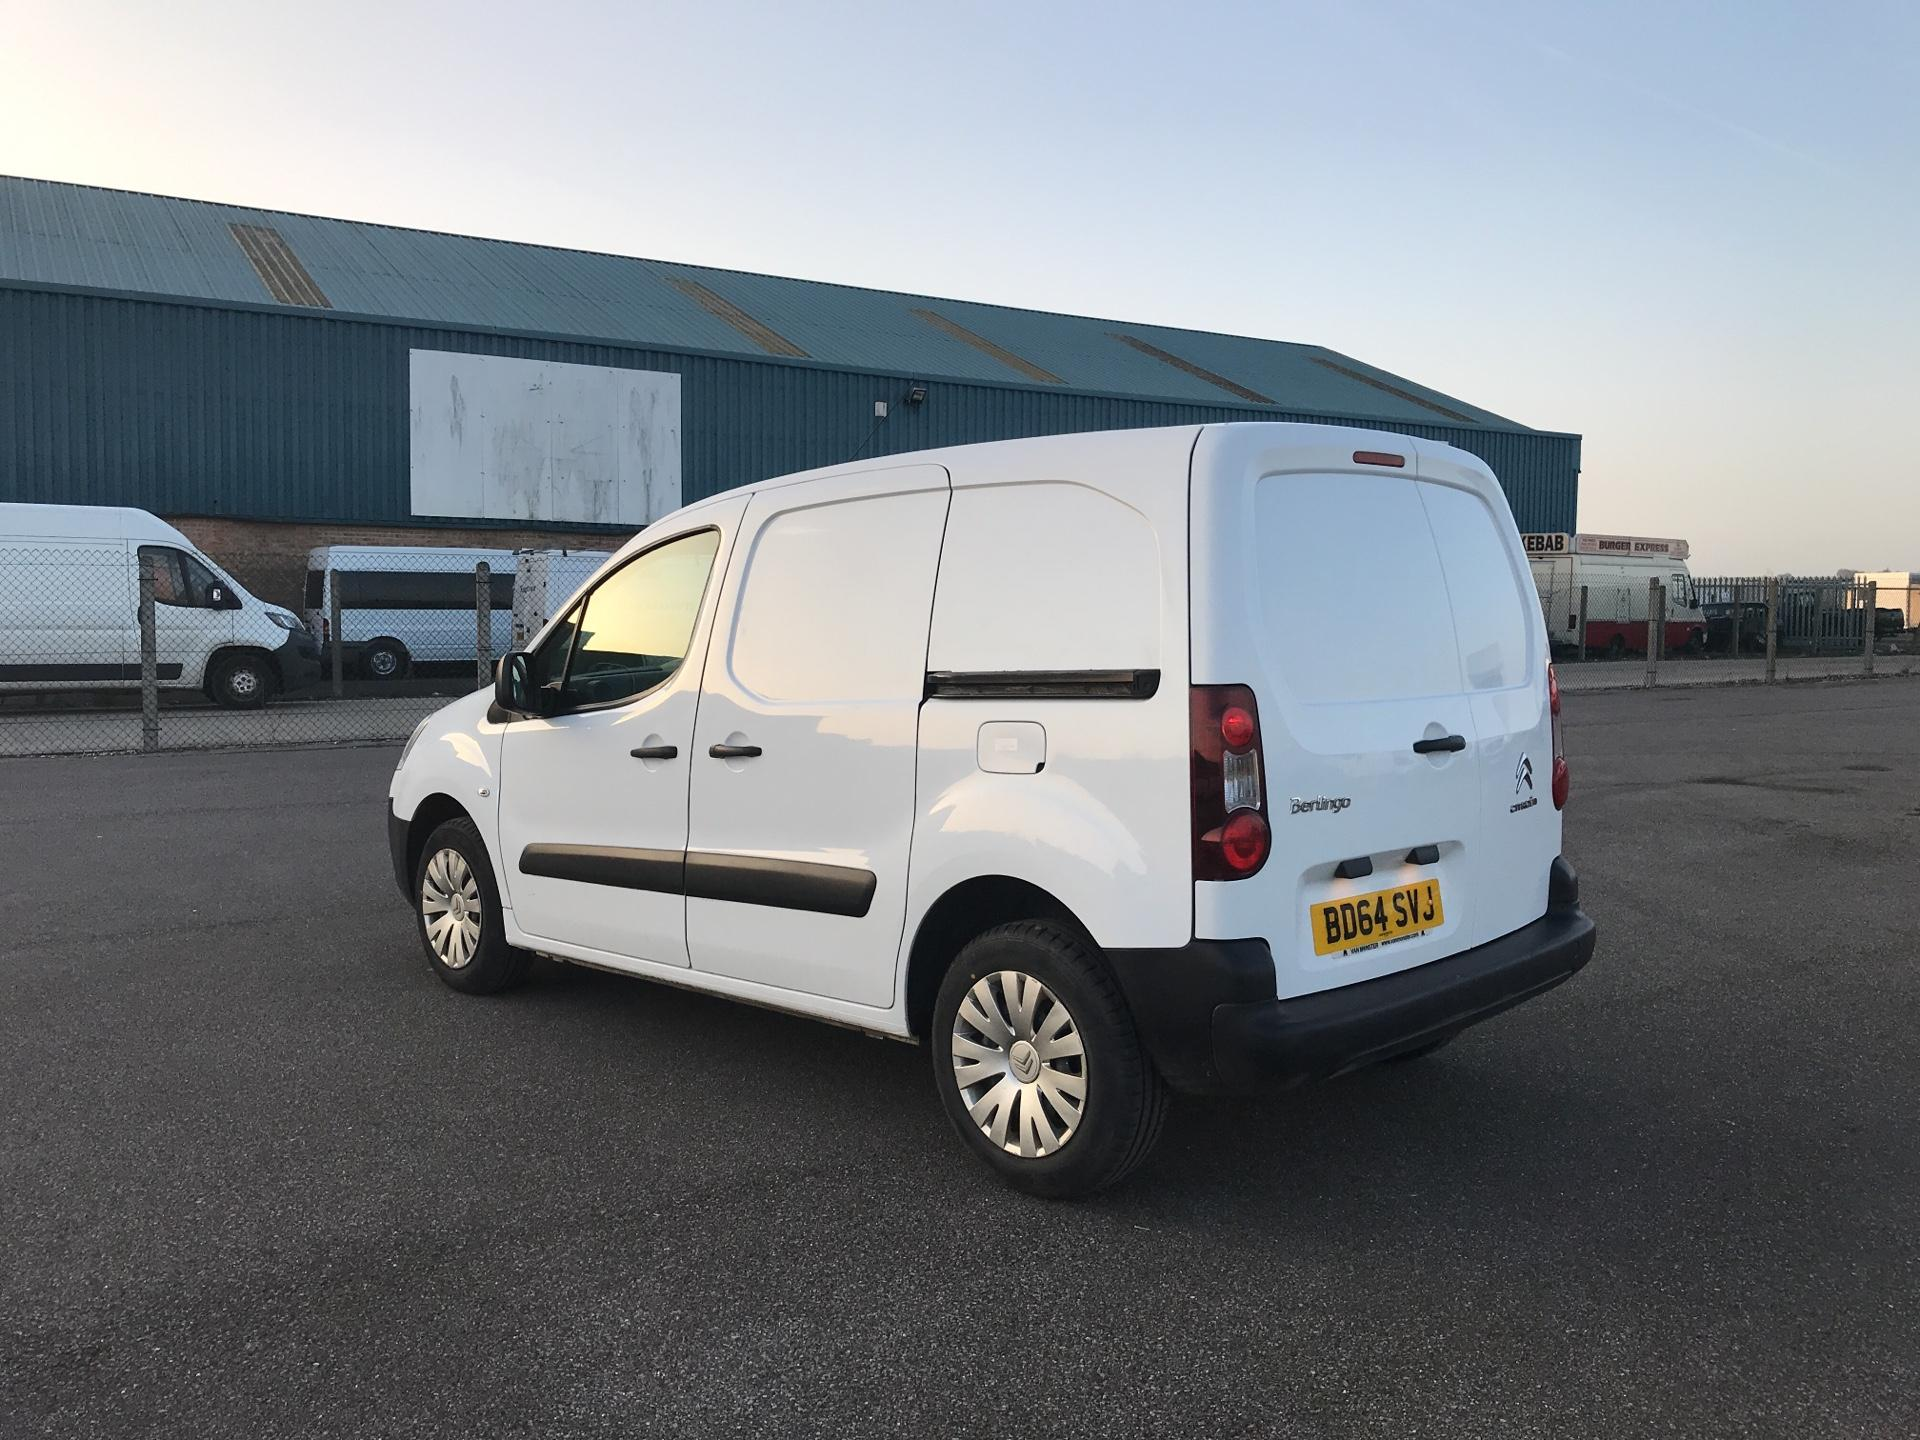 2014 Citroen Berlingo L1 DIESEL 1.6 HDI 625KG X 90PS (SLD) EURO 5. VALUE RANGE VEHICLE - CONDITION REFLECTED IN PRICE (BD64SVJ) Image 5